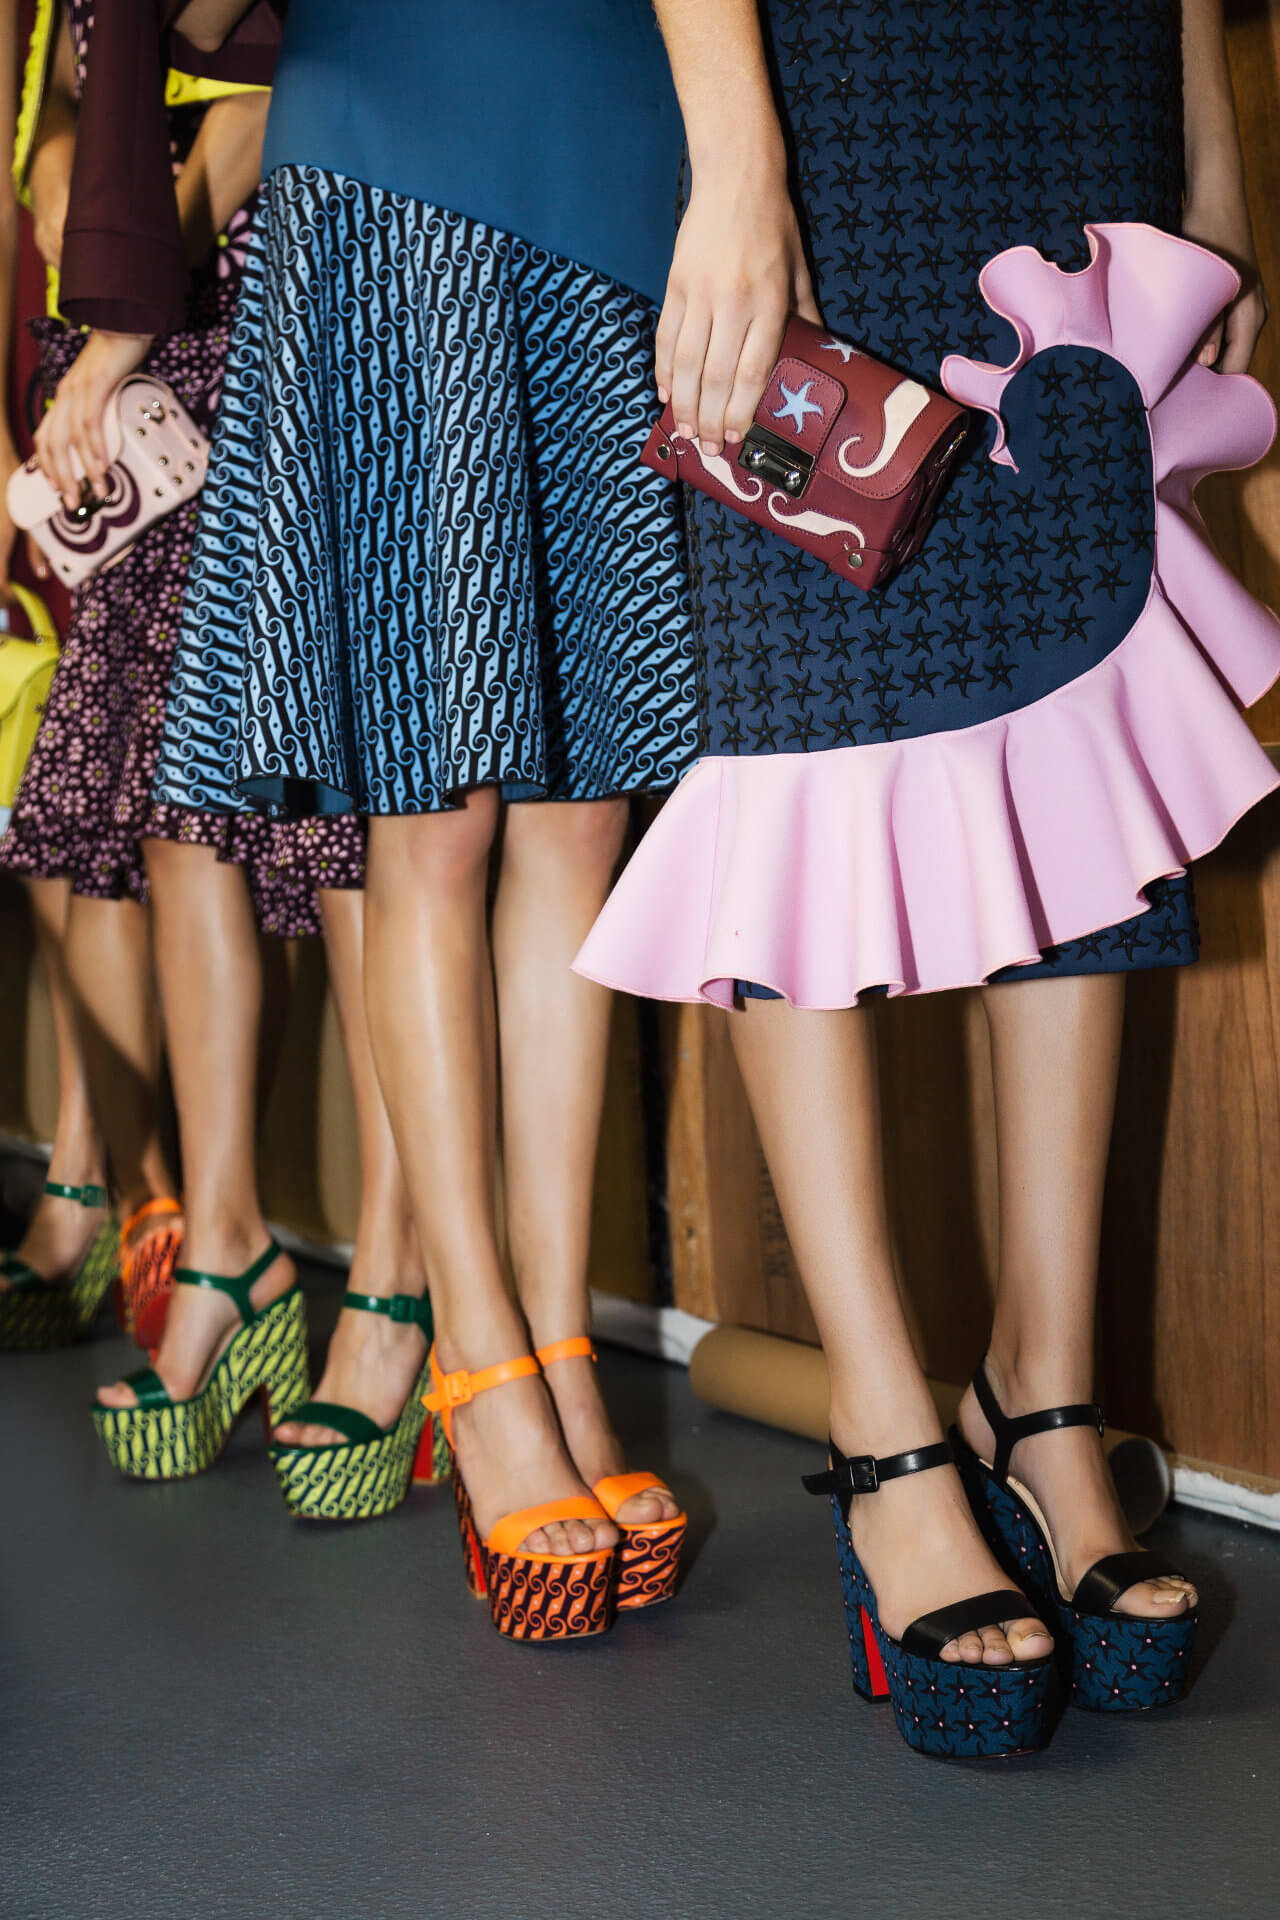 News - Christian Louboutin Online - LFW Gets Love From Louboutin